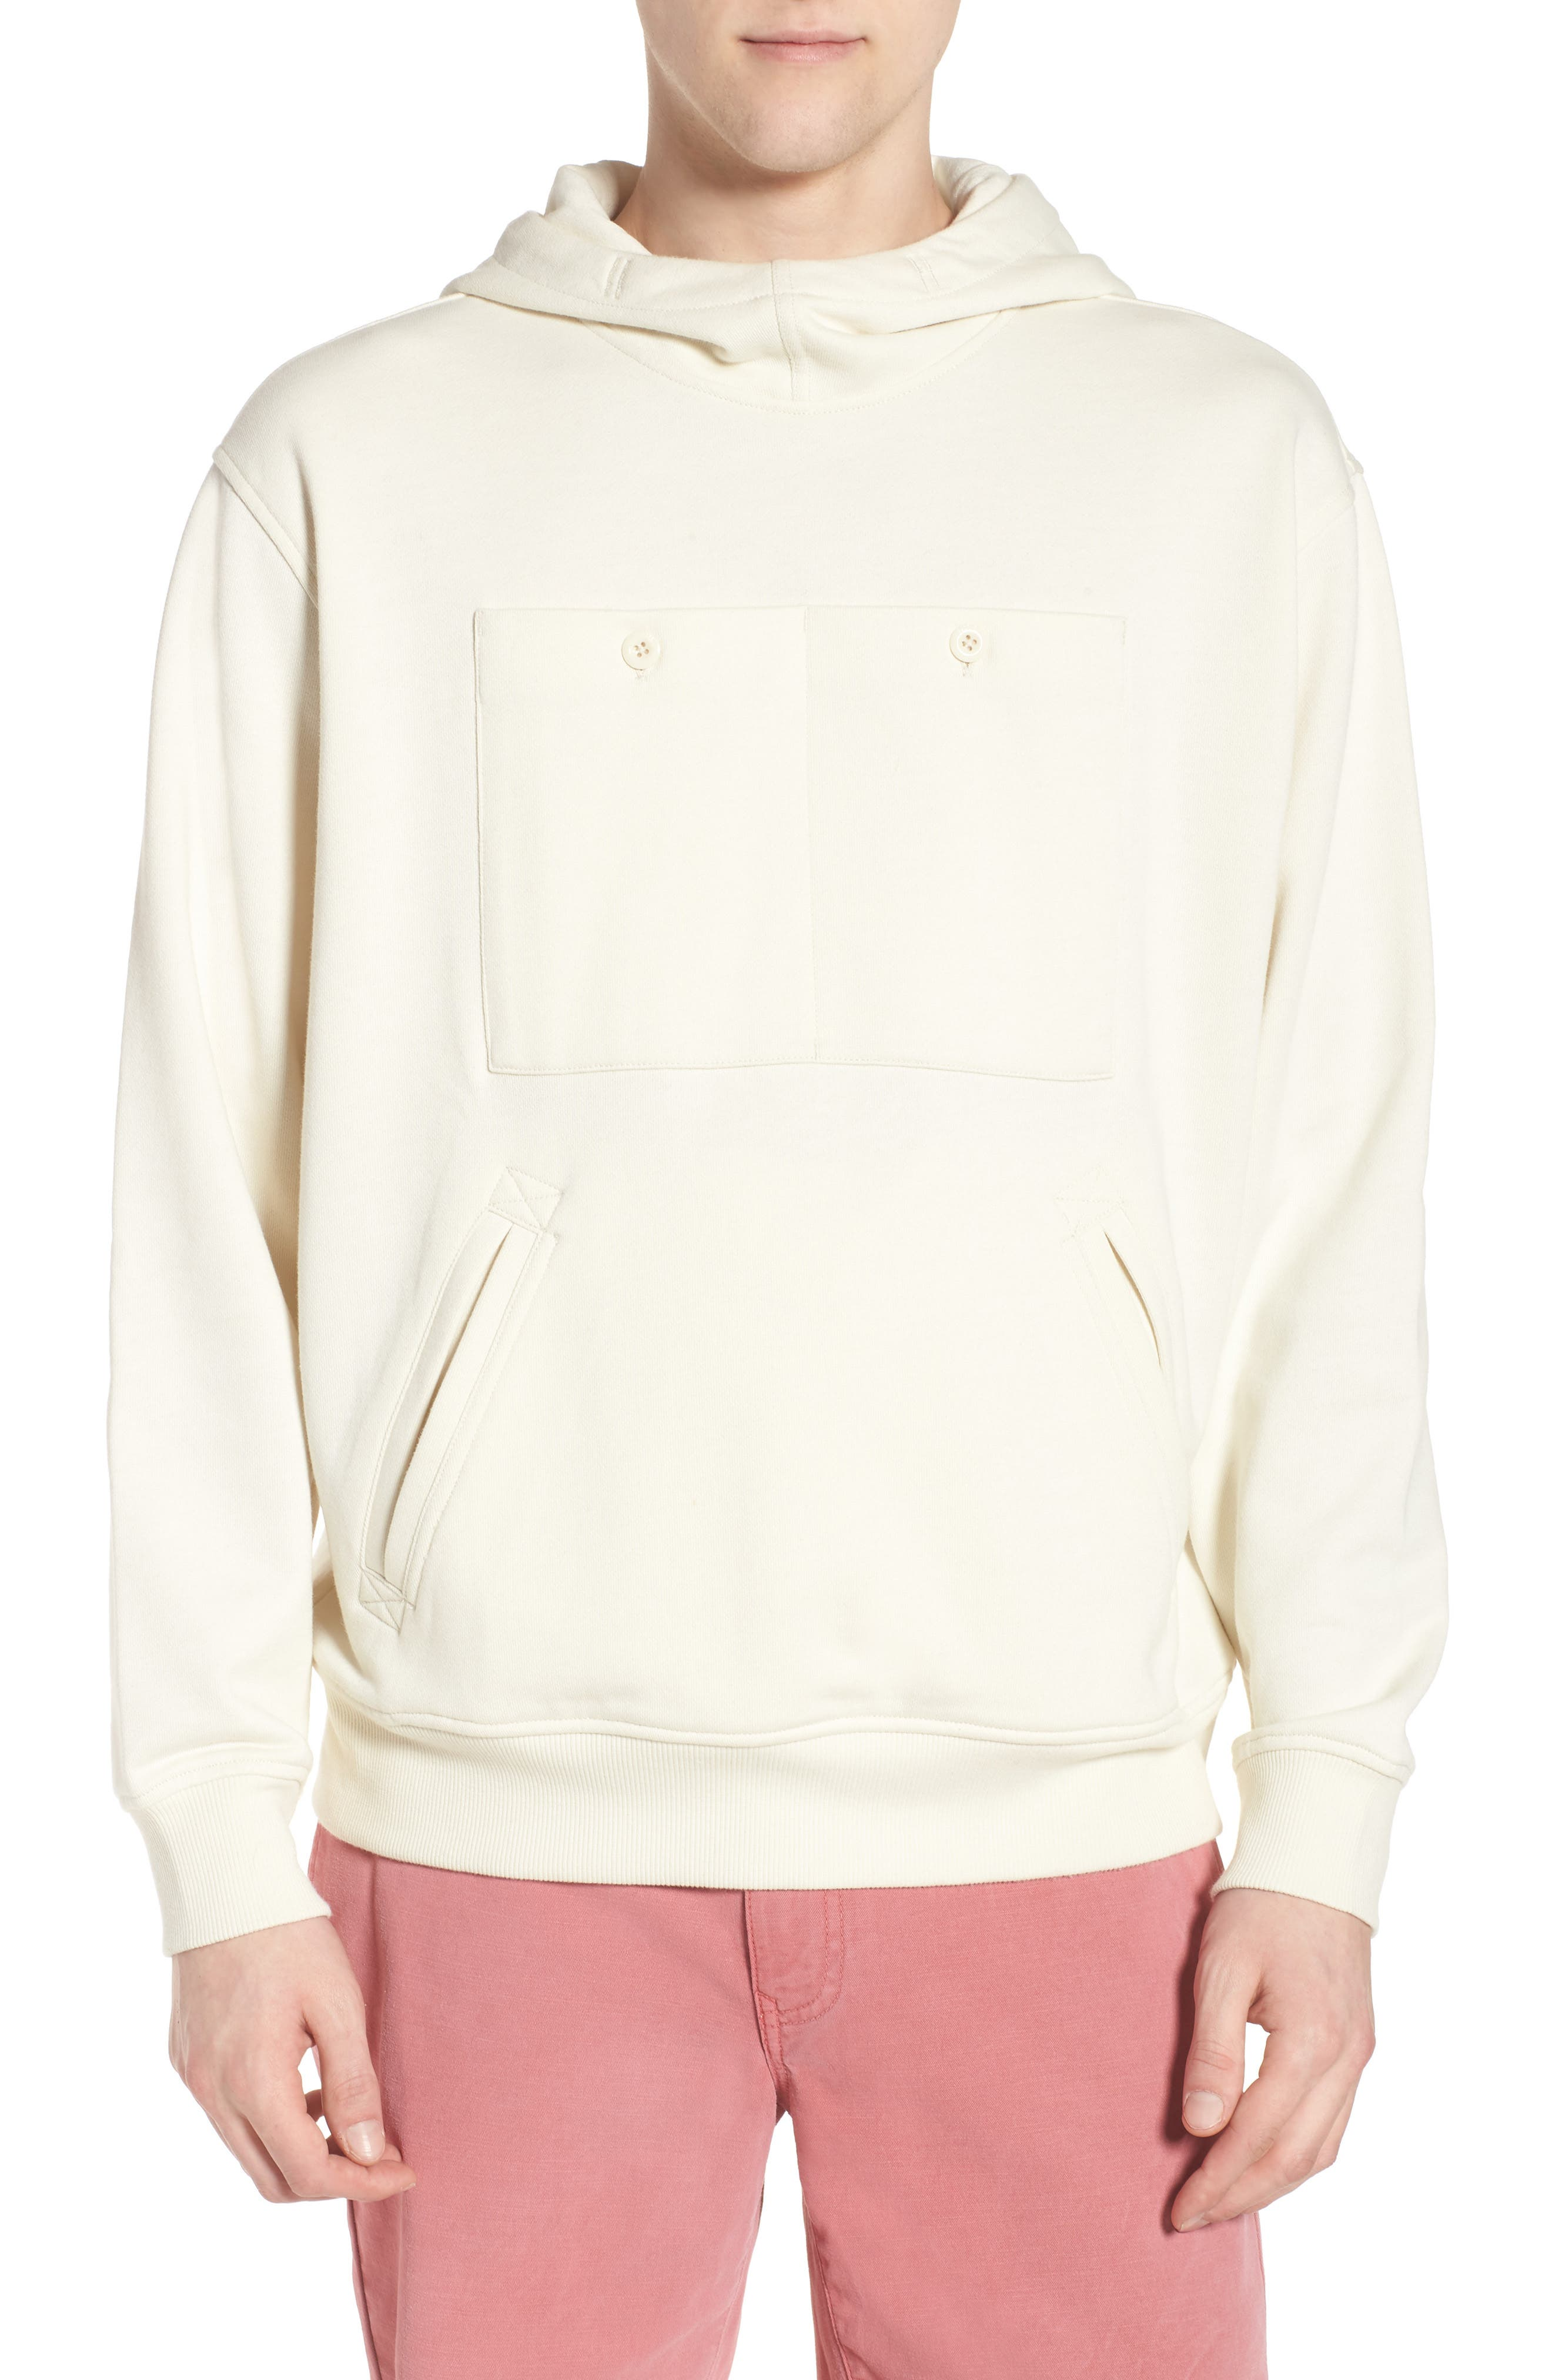 G-Star Raw Core Hybrid Archive Hooded Sweatshirt